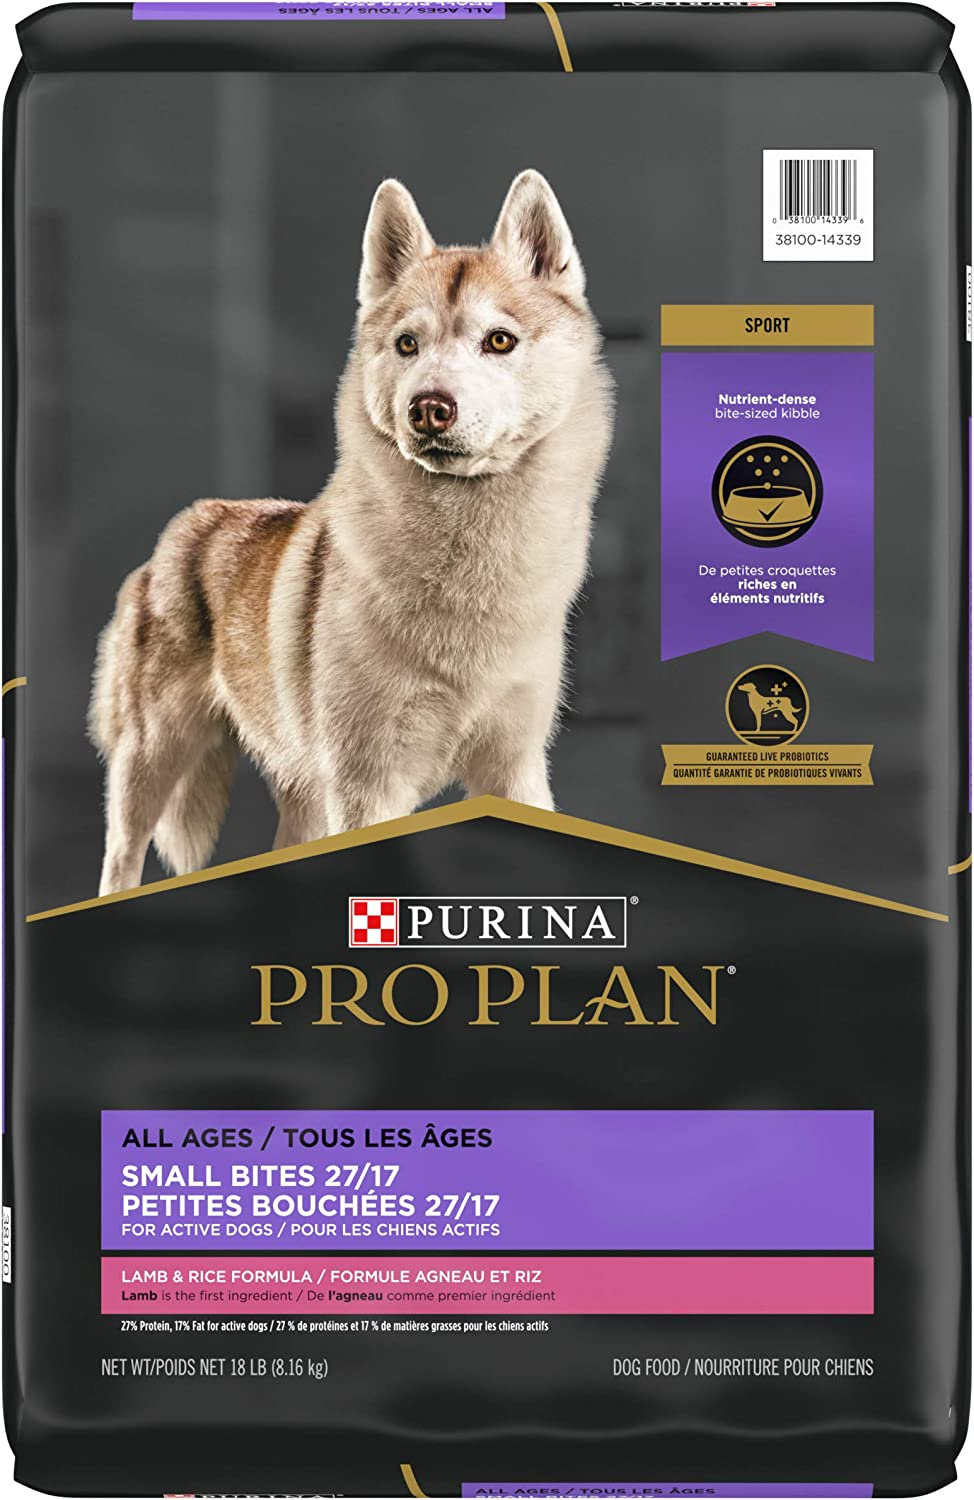 Purina Pro Plan High Protein, High Energy Dry Dog Food, Small Bites Lamb & Rice Formula - 18 lb. Bag